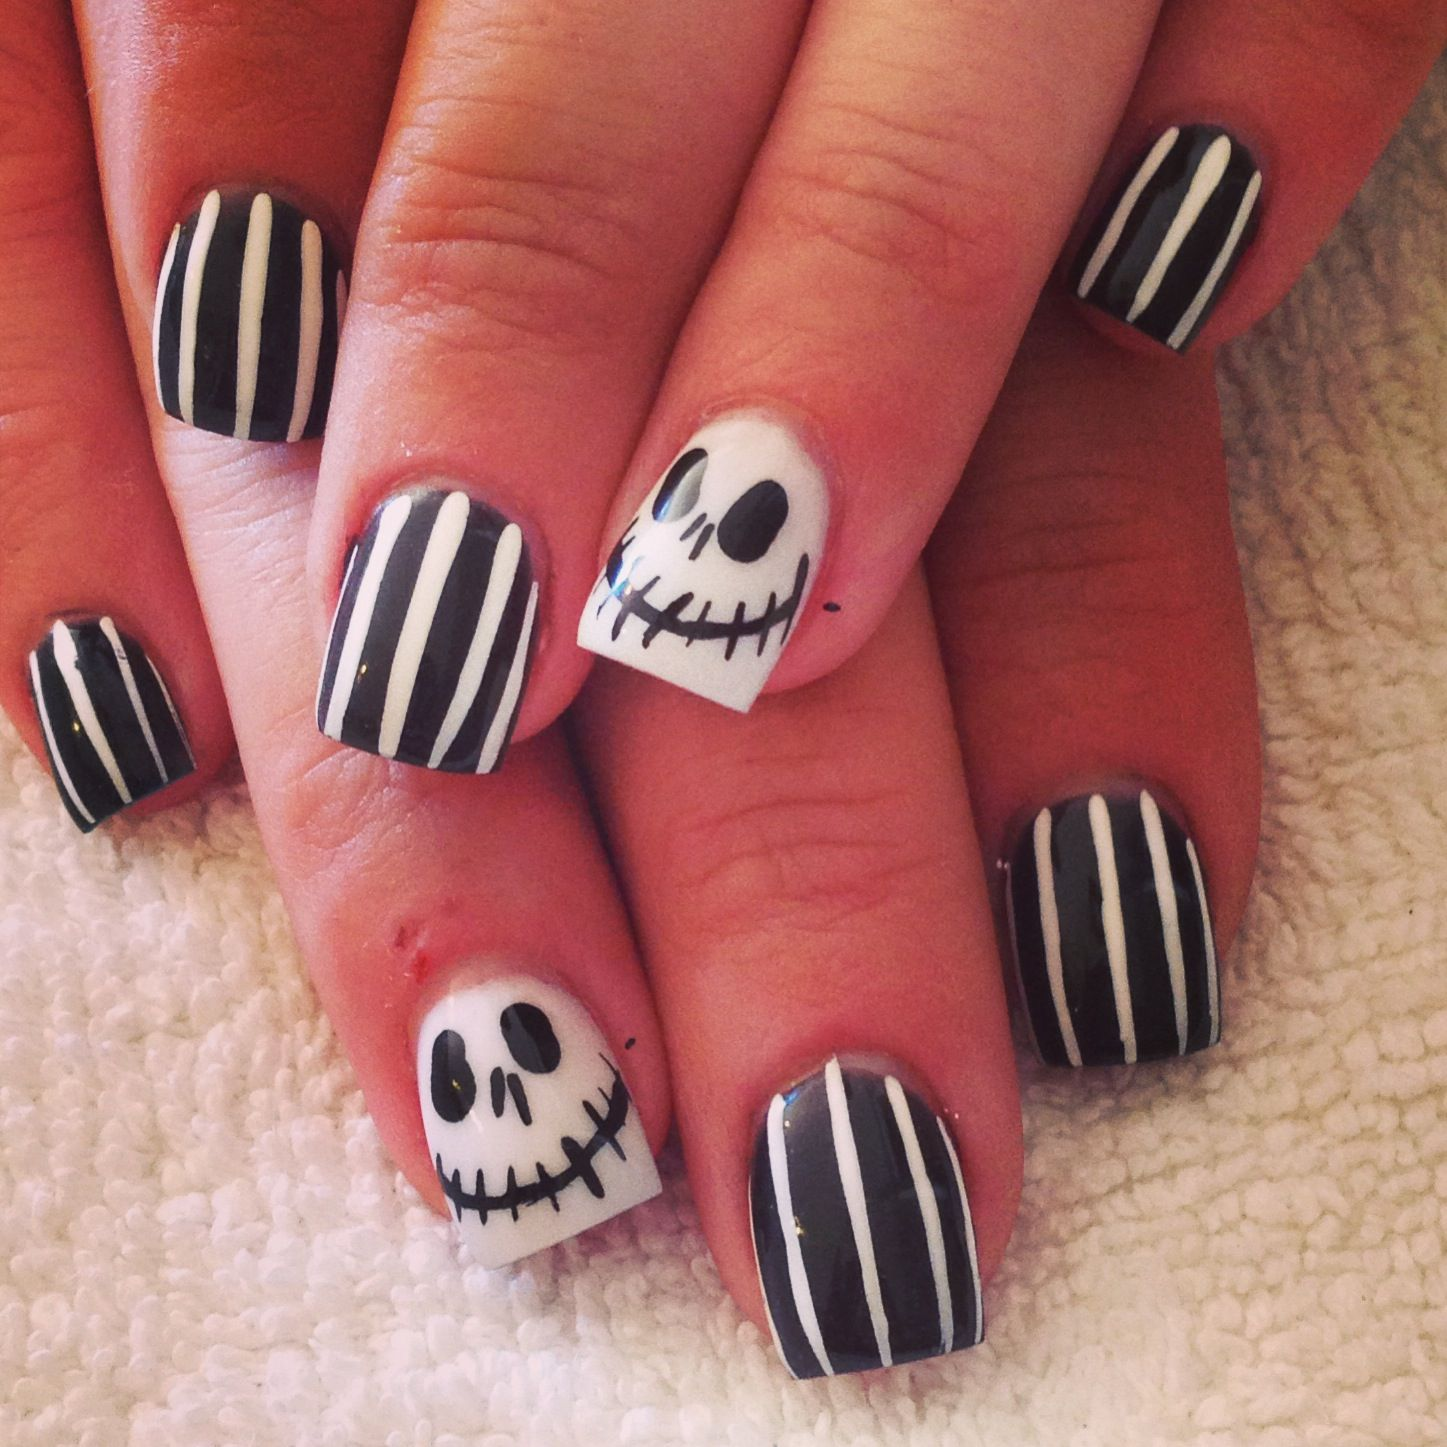 Acrylic nails for Halloween Body & Sole Estevan, Sk   Just something ...